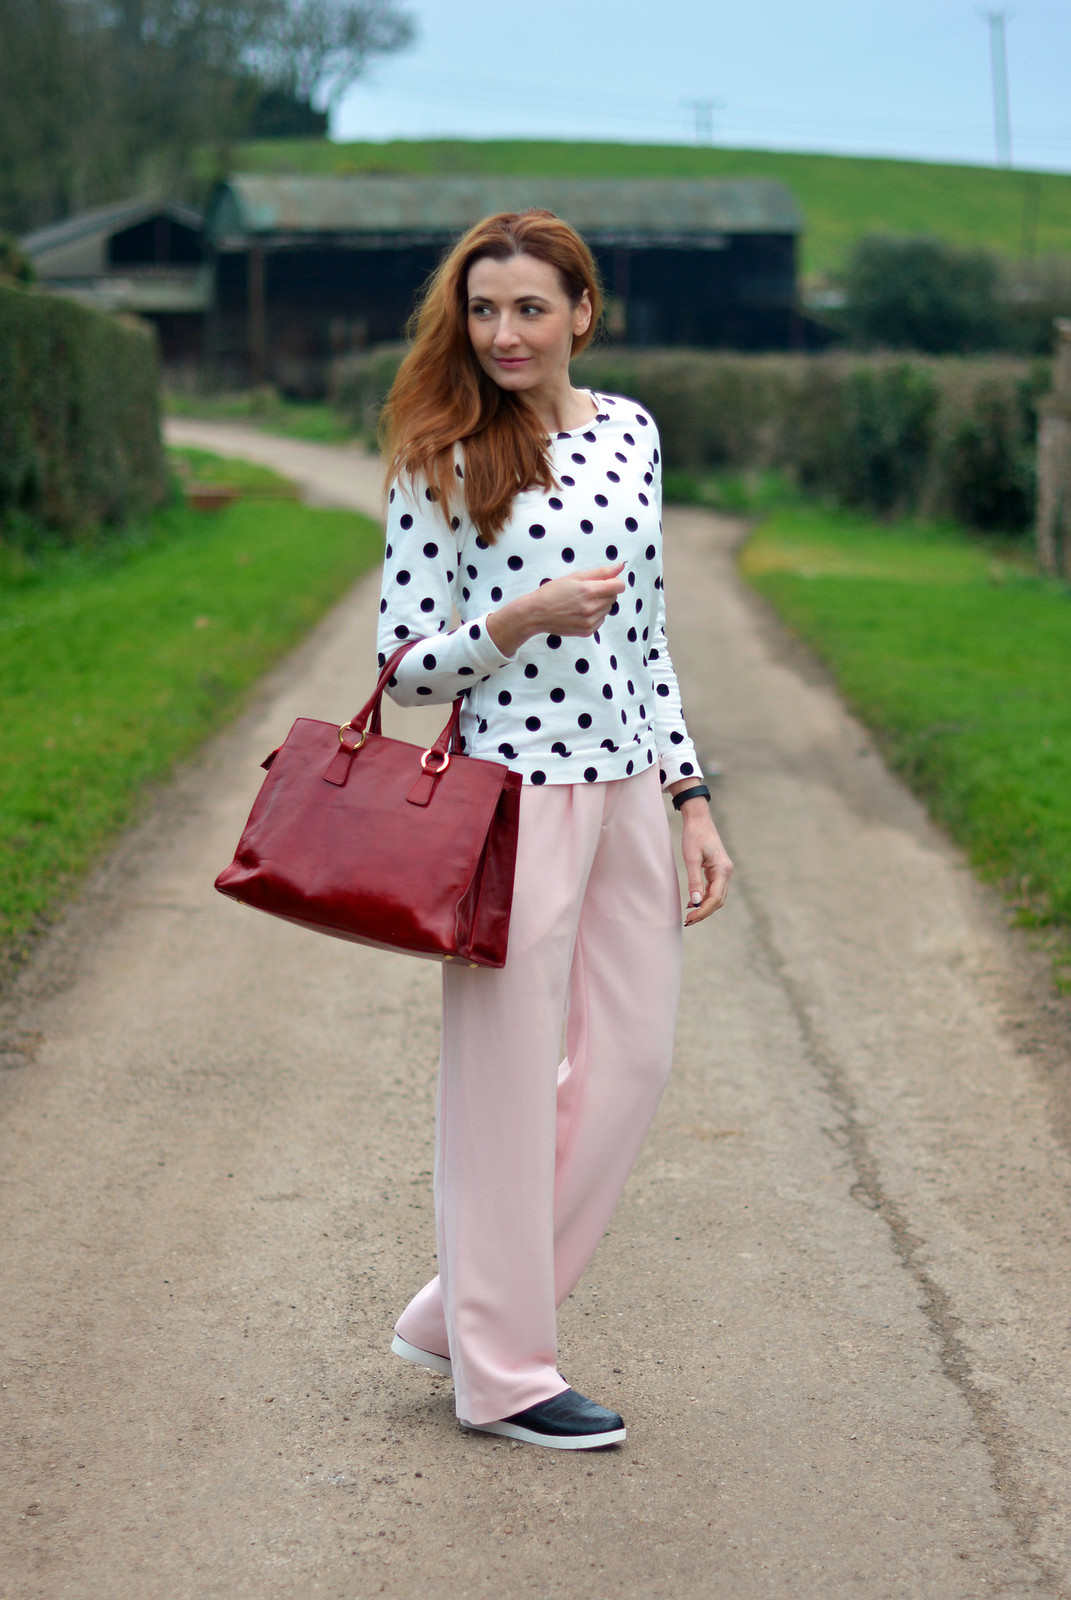 Black & white polka dot sweatshirt, pastel pink wide legged trousers, black slip on sneakers, cherry red tote